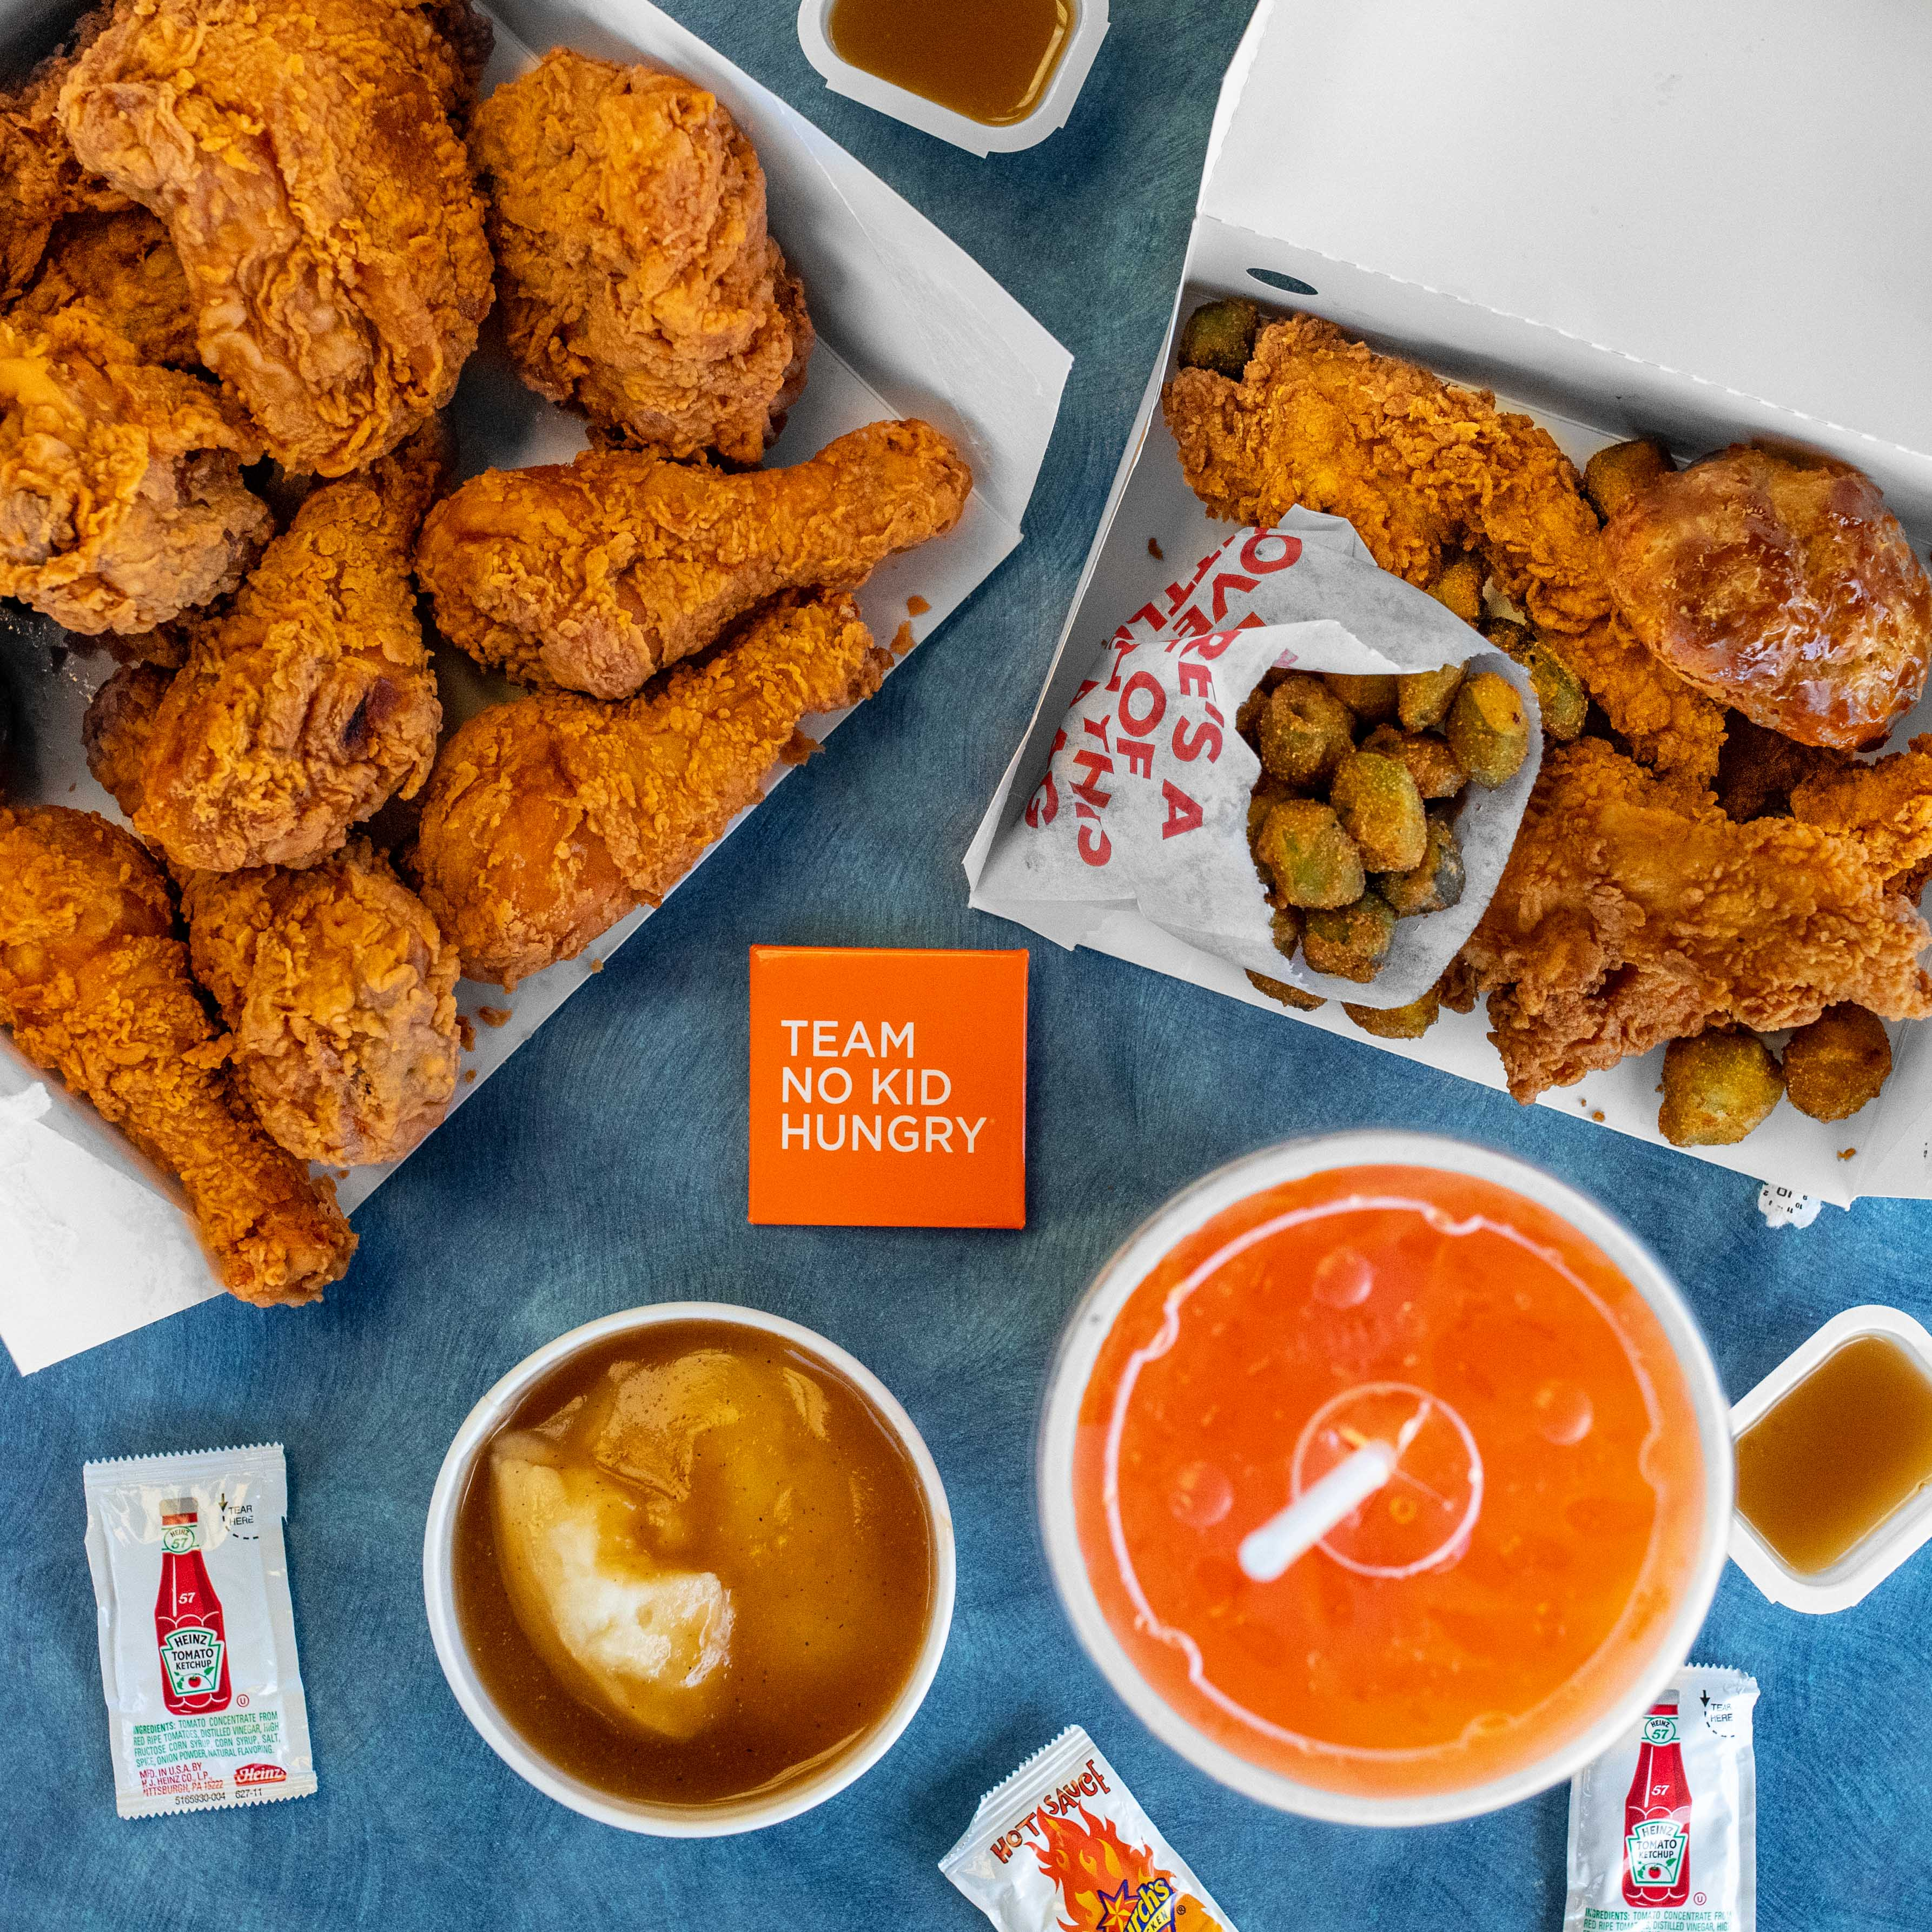 Church's Chicken #NoKidHungry Cup and Food Spread